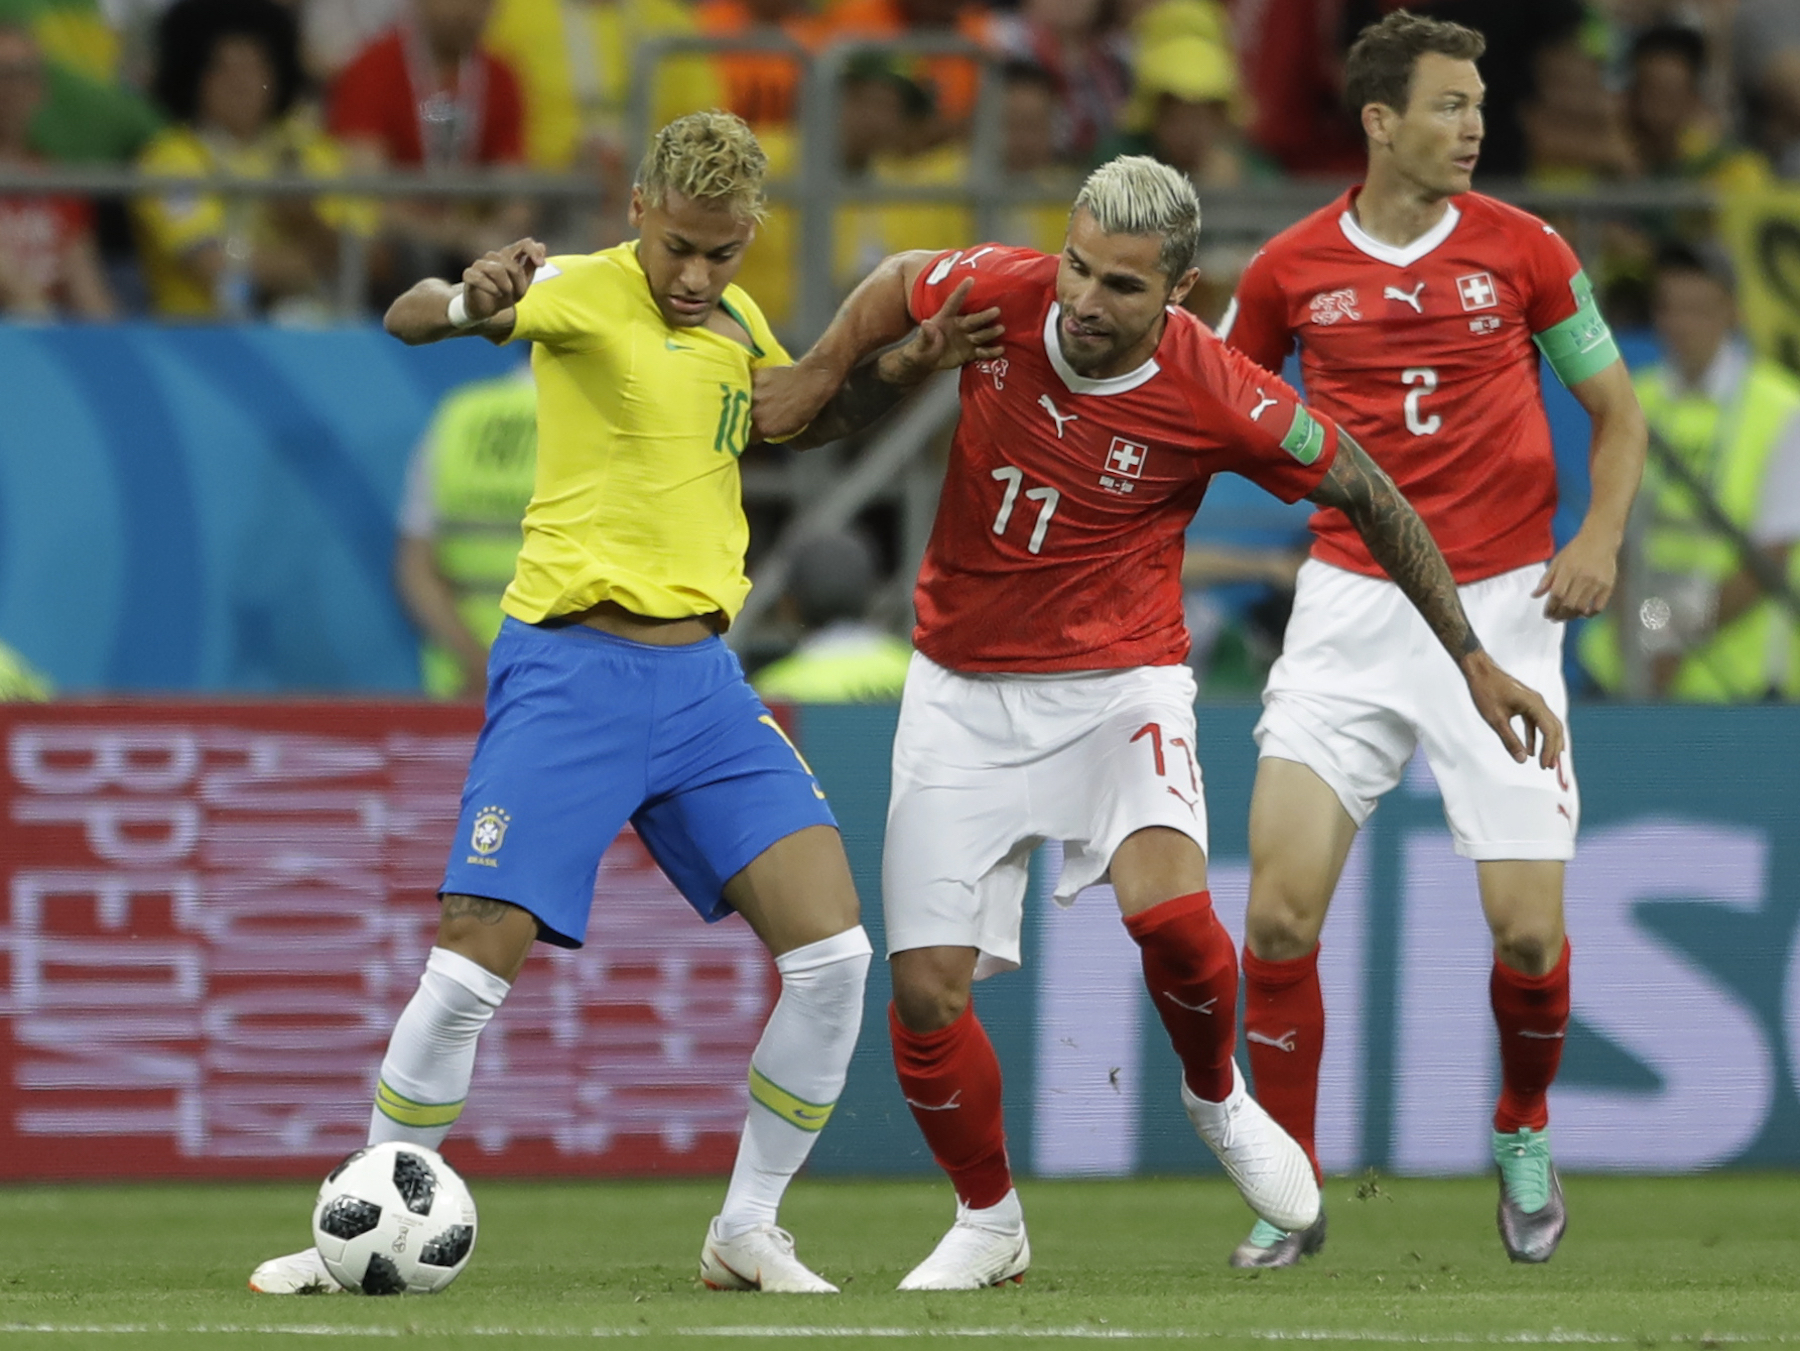 "<div class=""meta image-caption""><div class=""origin-logo origin-image ap""><span>AP</span></div><span class=""caption-text"">Brazil's Neymar, left, is challenged for the ball by Switzerland's Valon Behrami during the group E match between Brazil and Switzerland at the 2018 soccer World Cup. (AP Photo/Andre Penner)</span></div>"